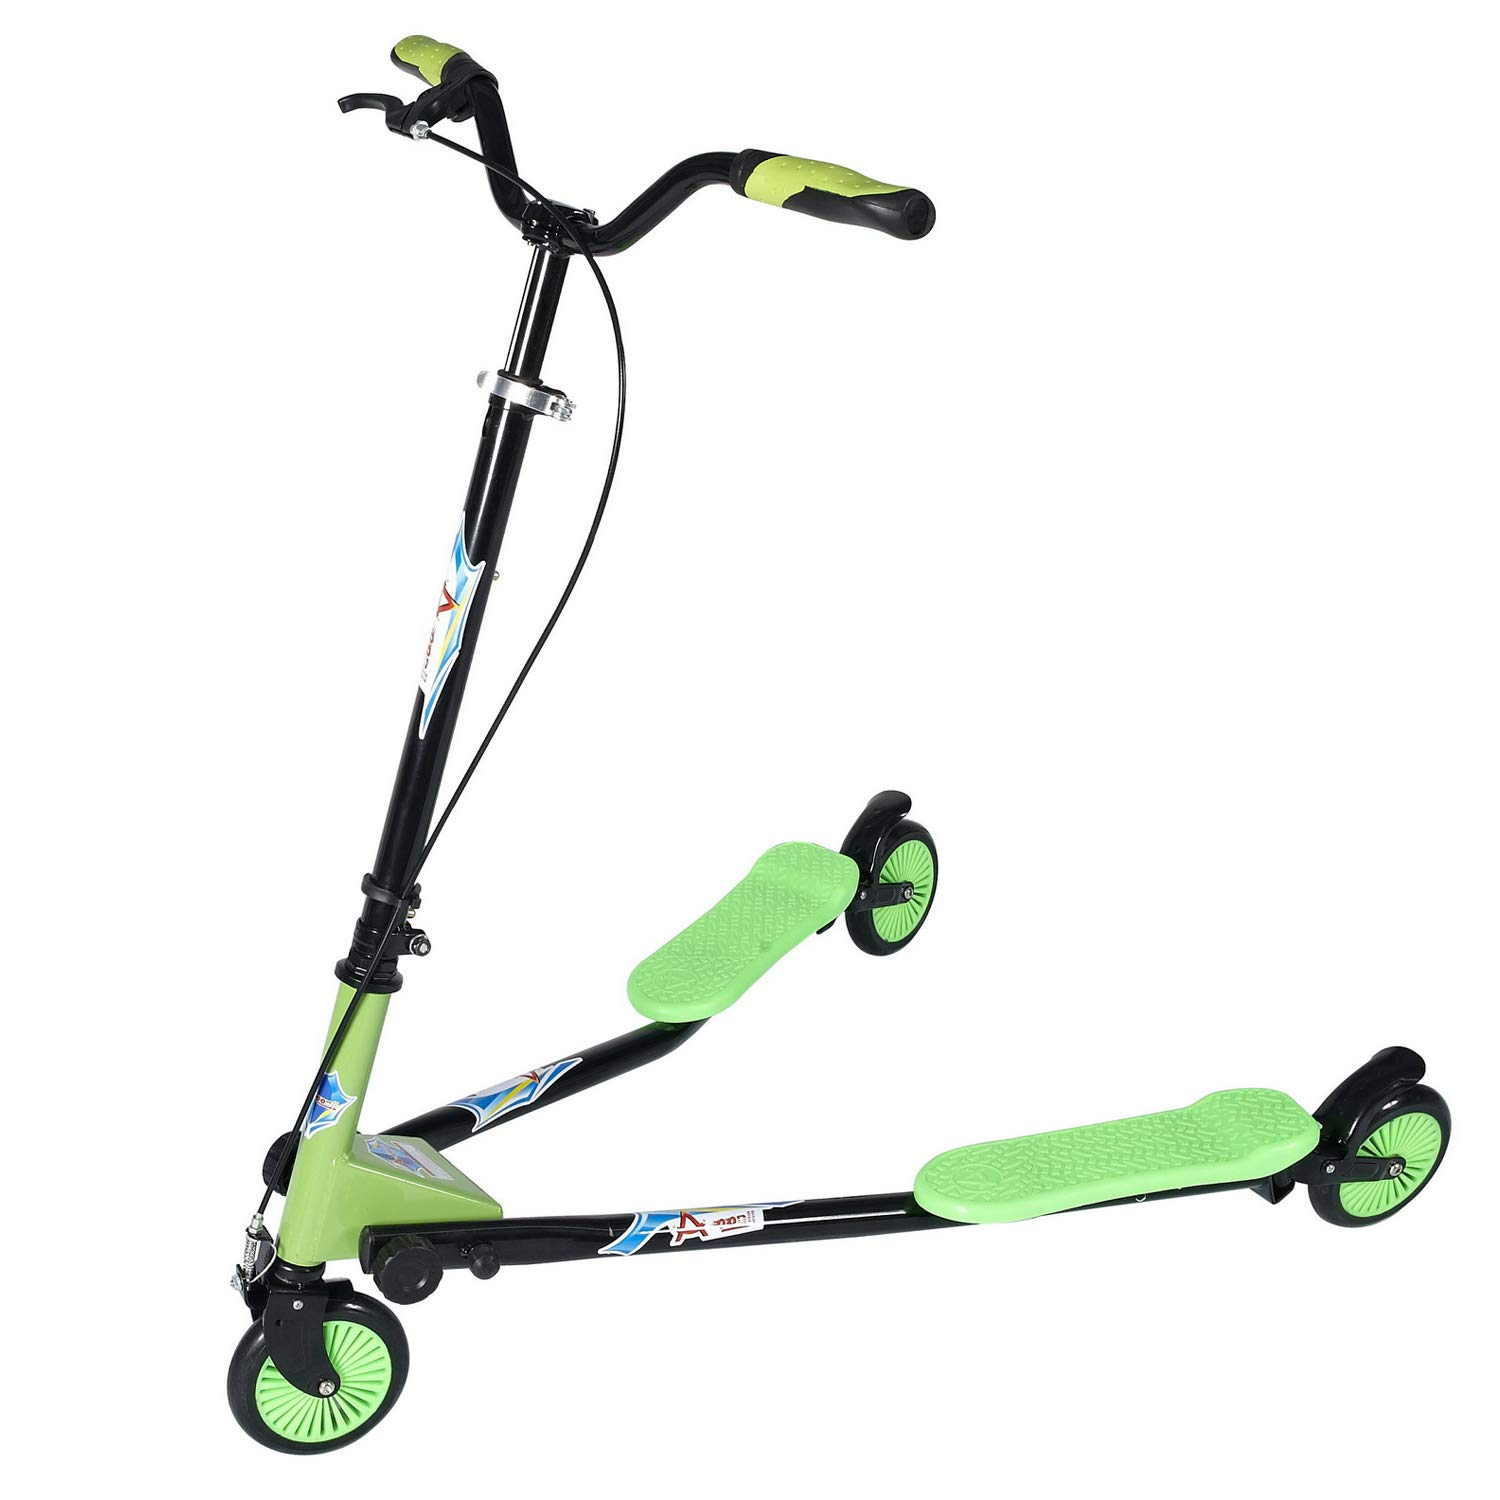 AODI Scooter Speeder Foldable Kickboard